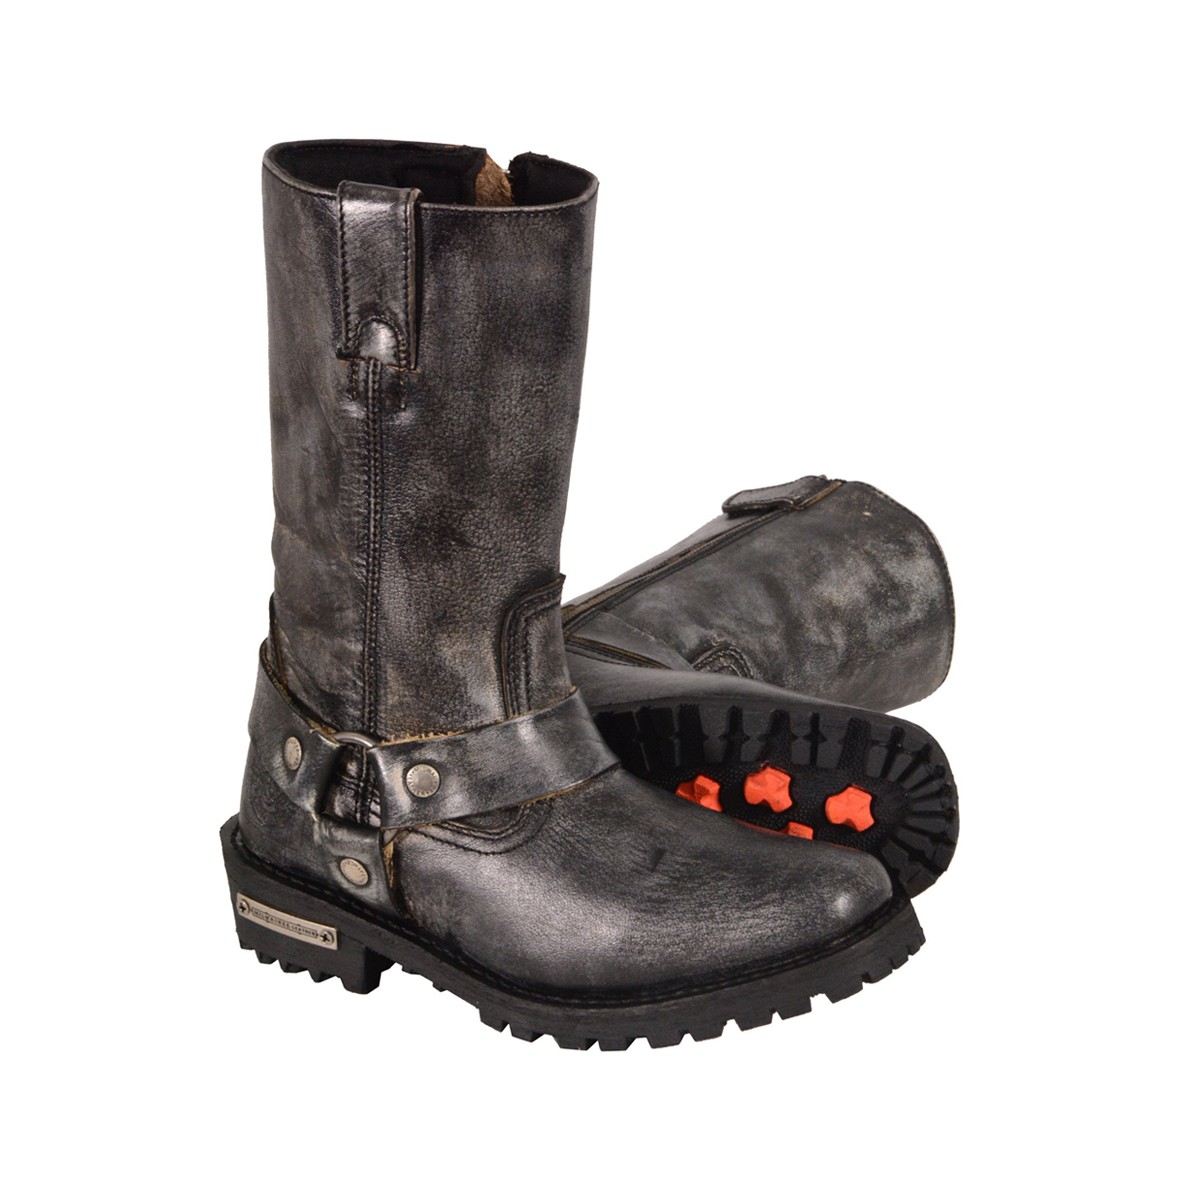 Women's Motorcycle Boots. Show the world your rebellious side with Harley-Davidson women's motorcycle boots. Wear them with jeans, skirts, and everything else when you want to add a little Harley edge to your ensemble. You can compare up to 6 items at a time. Remove one or more items before adding another to compare.